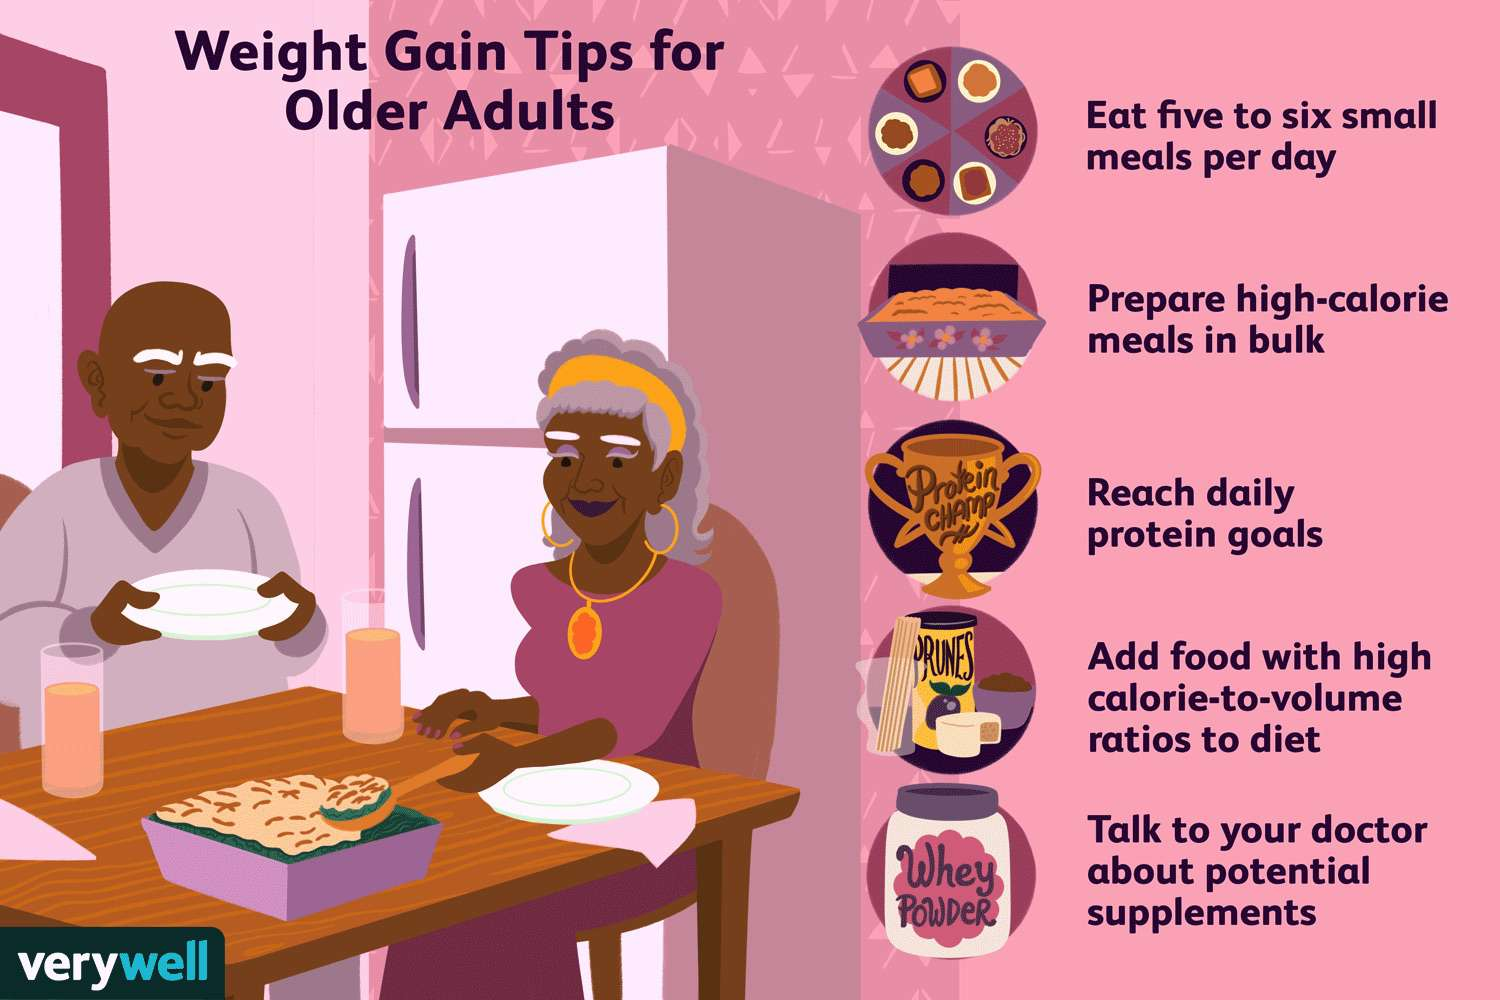 weight gain tips for older adults